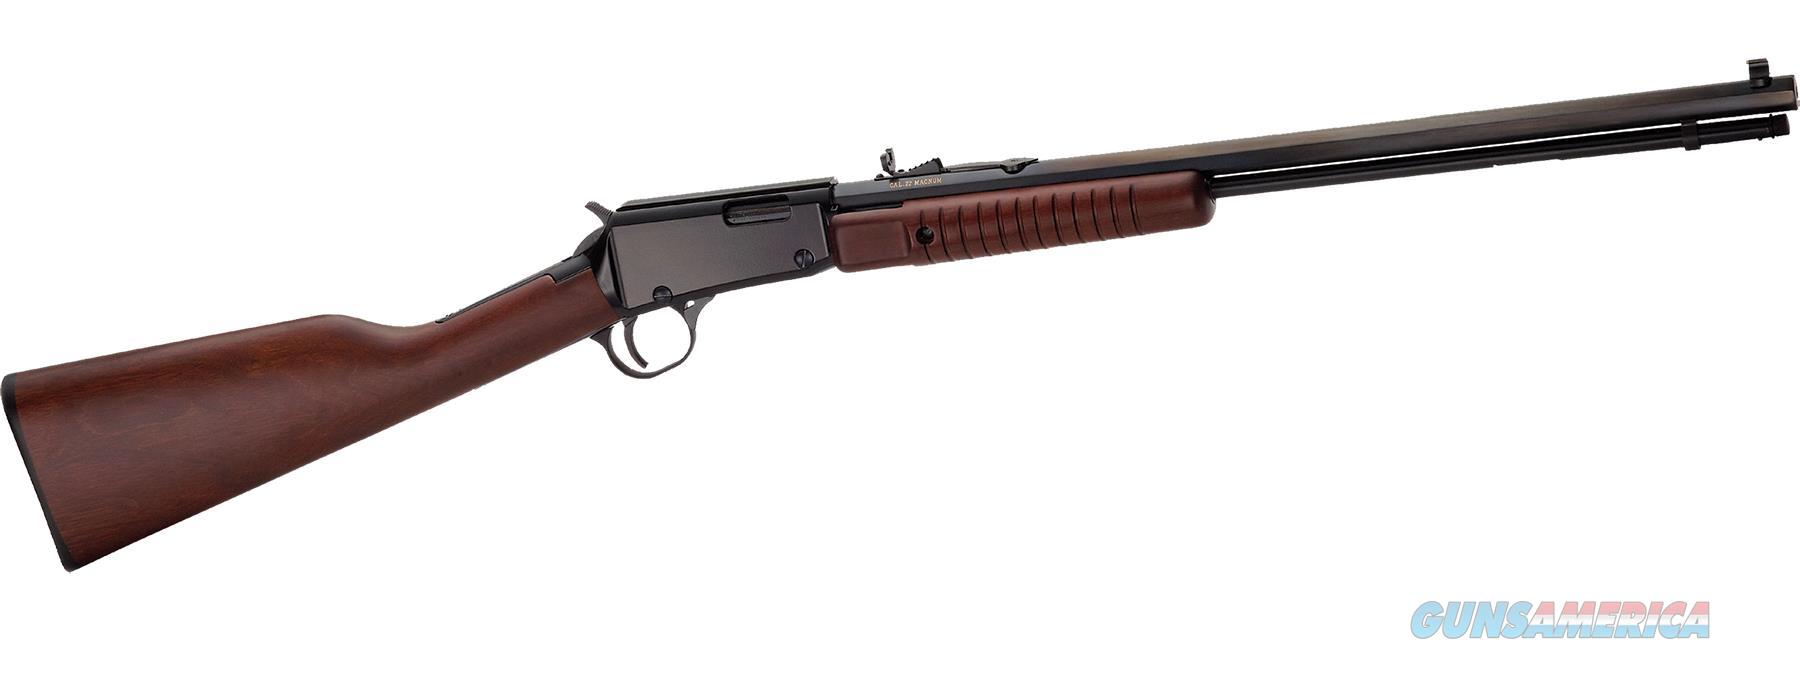 "HENRY PUMP ACT 22WMR 20.5"" OCT H003TM  Guns > Rifles > Henry Rifle Company"